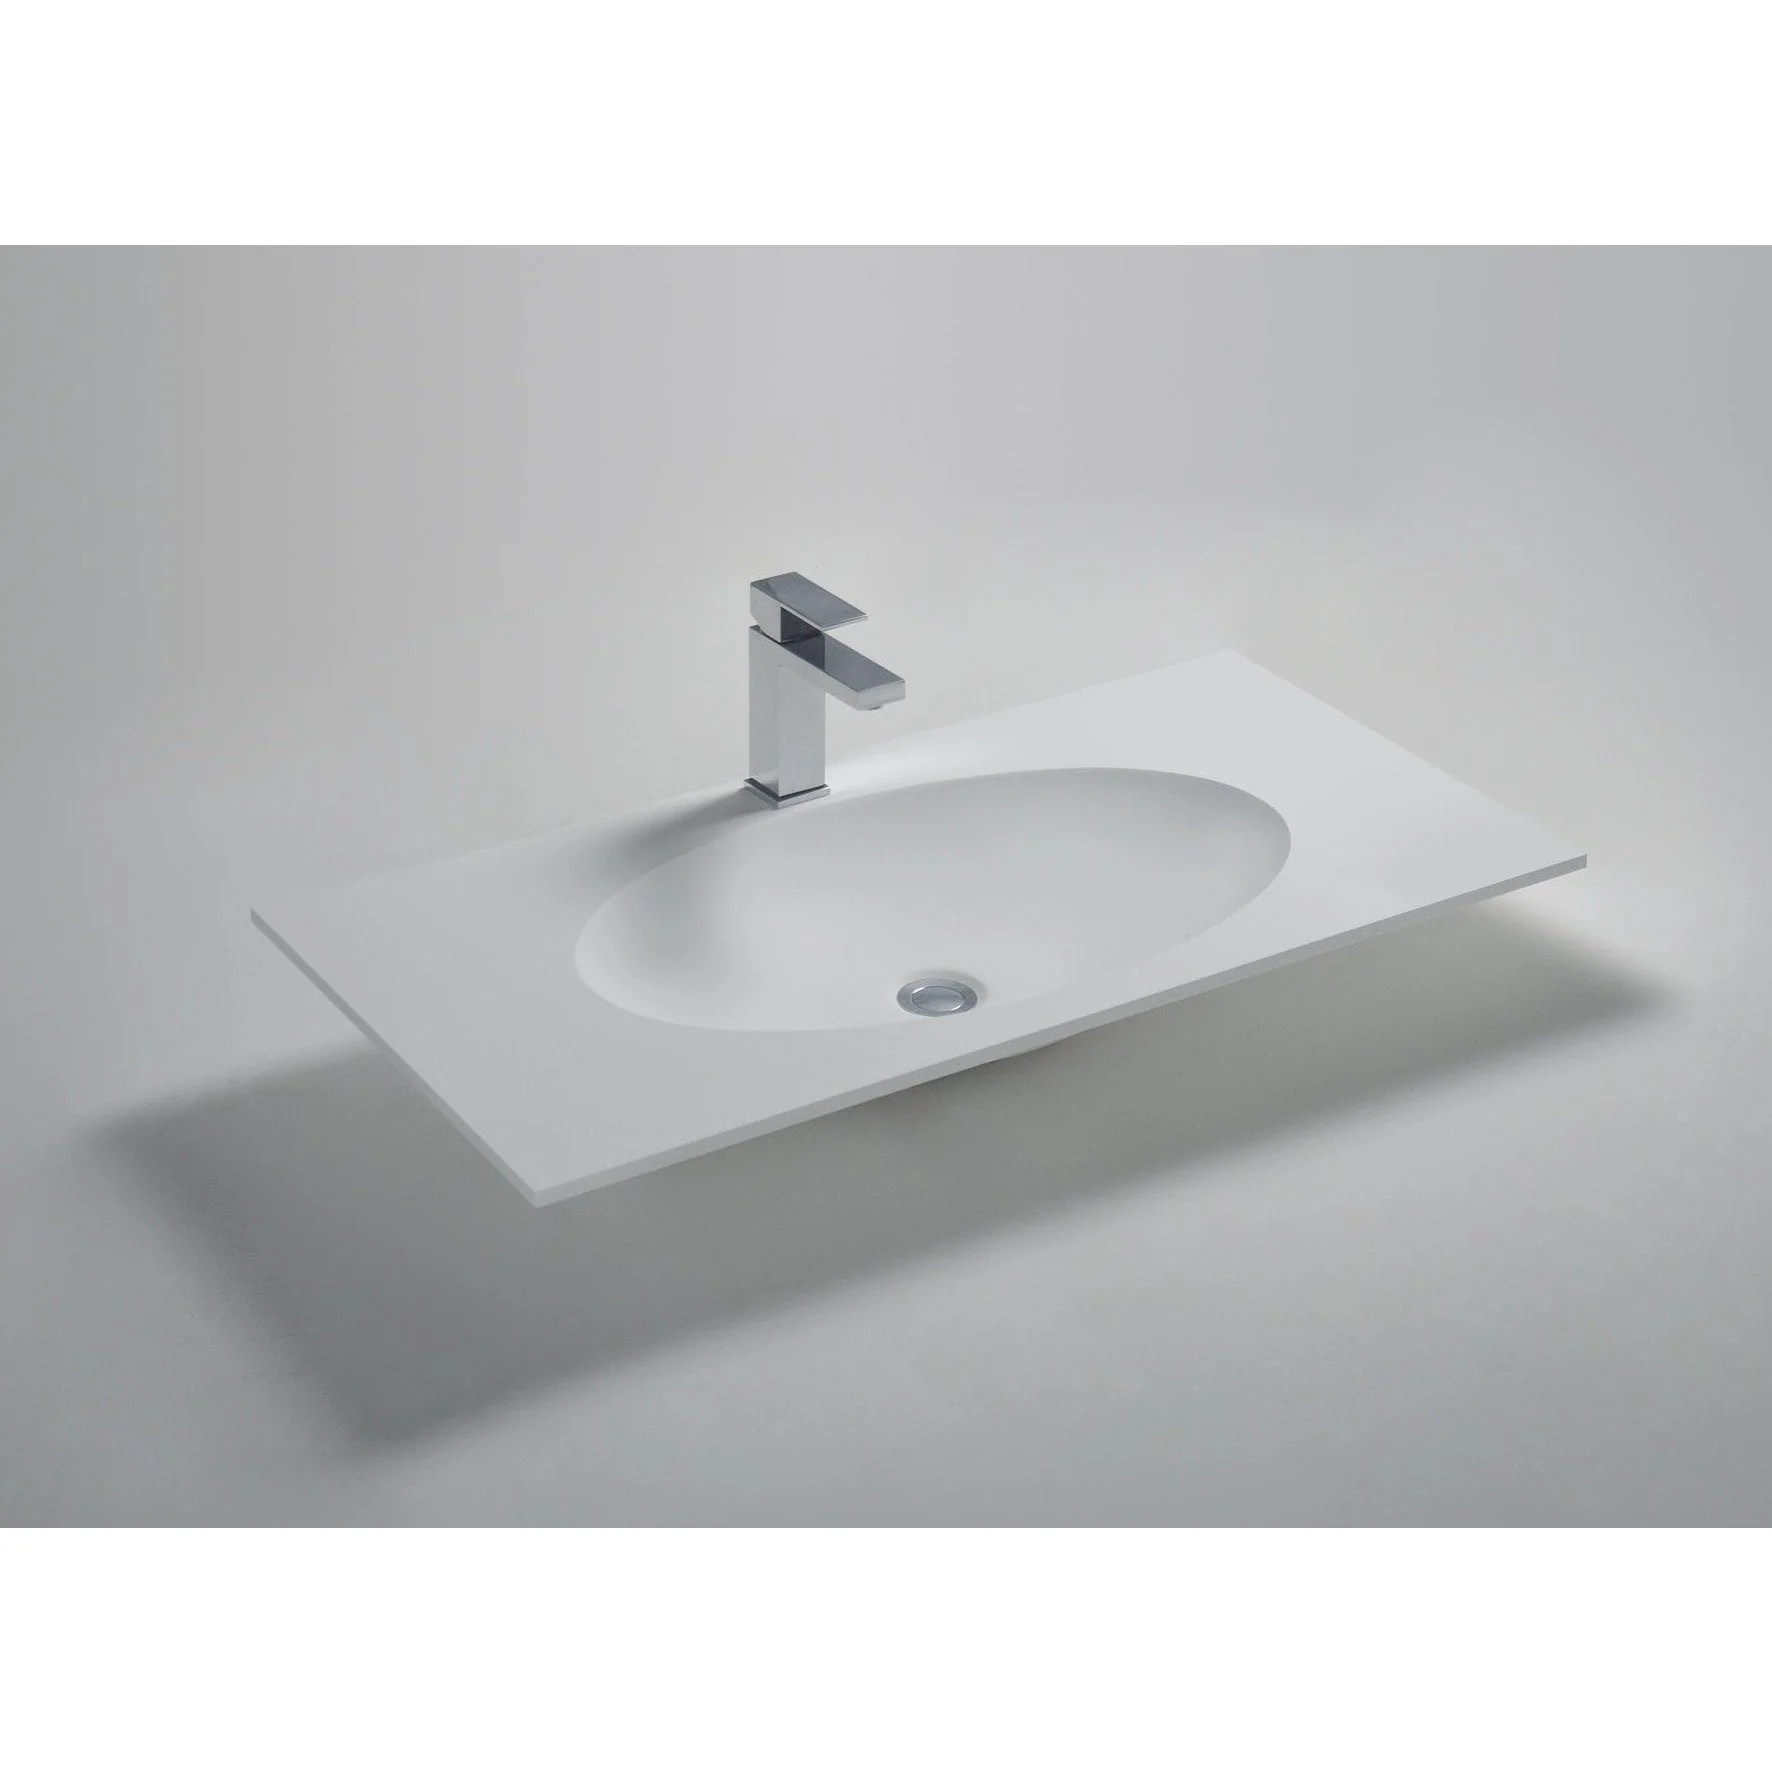 solidzelig 35 47 59 inches vanity countertop with 1 oval shape basins single sink